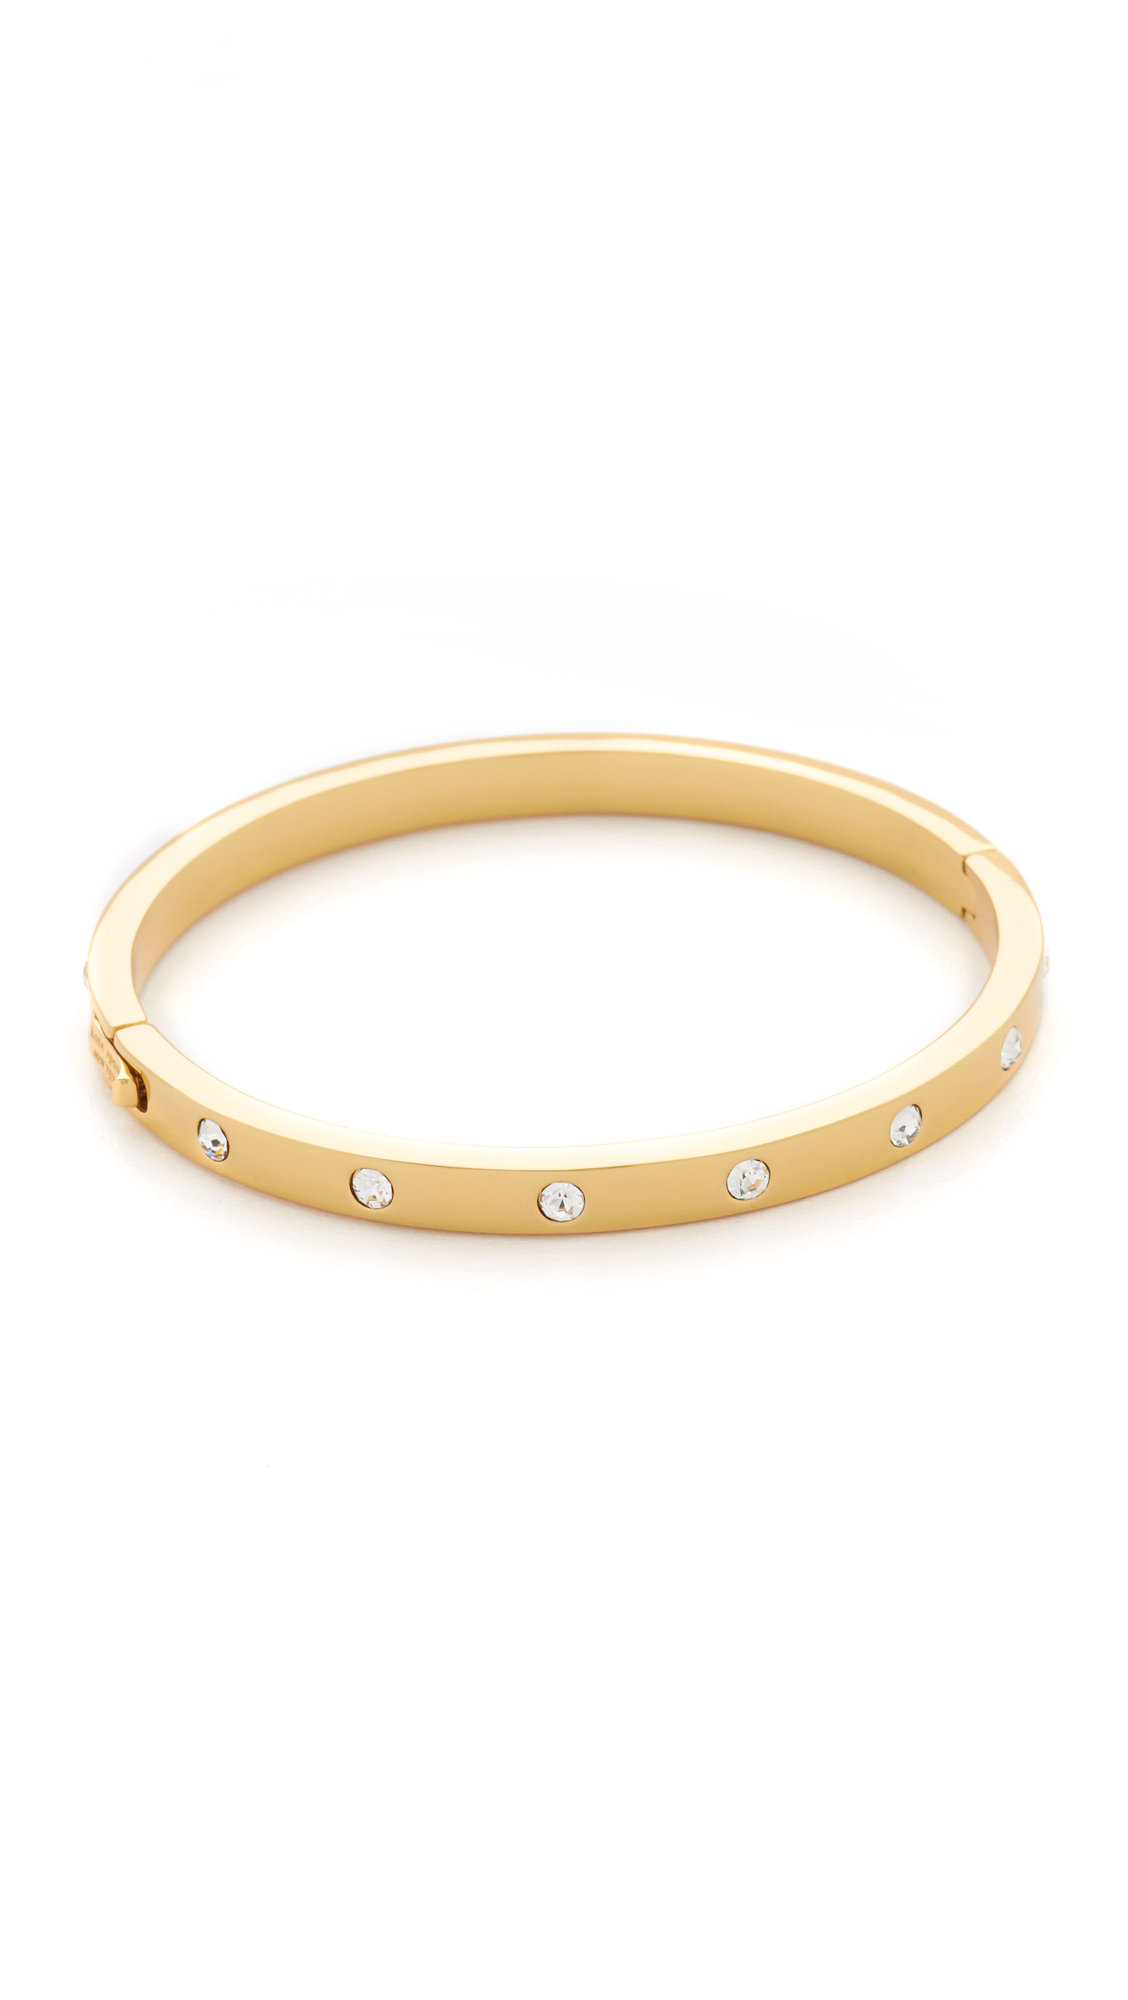 Kate Spade Set In Stone Hinged Bangle In Gold Clear Gold